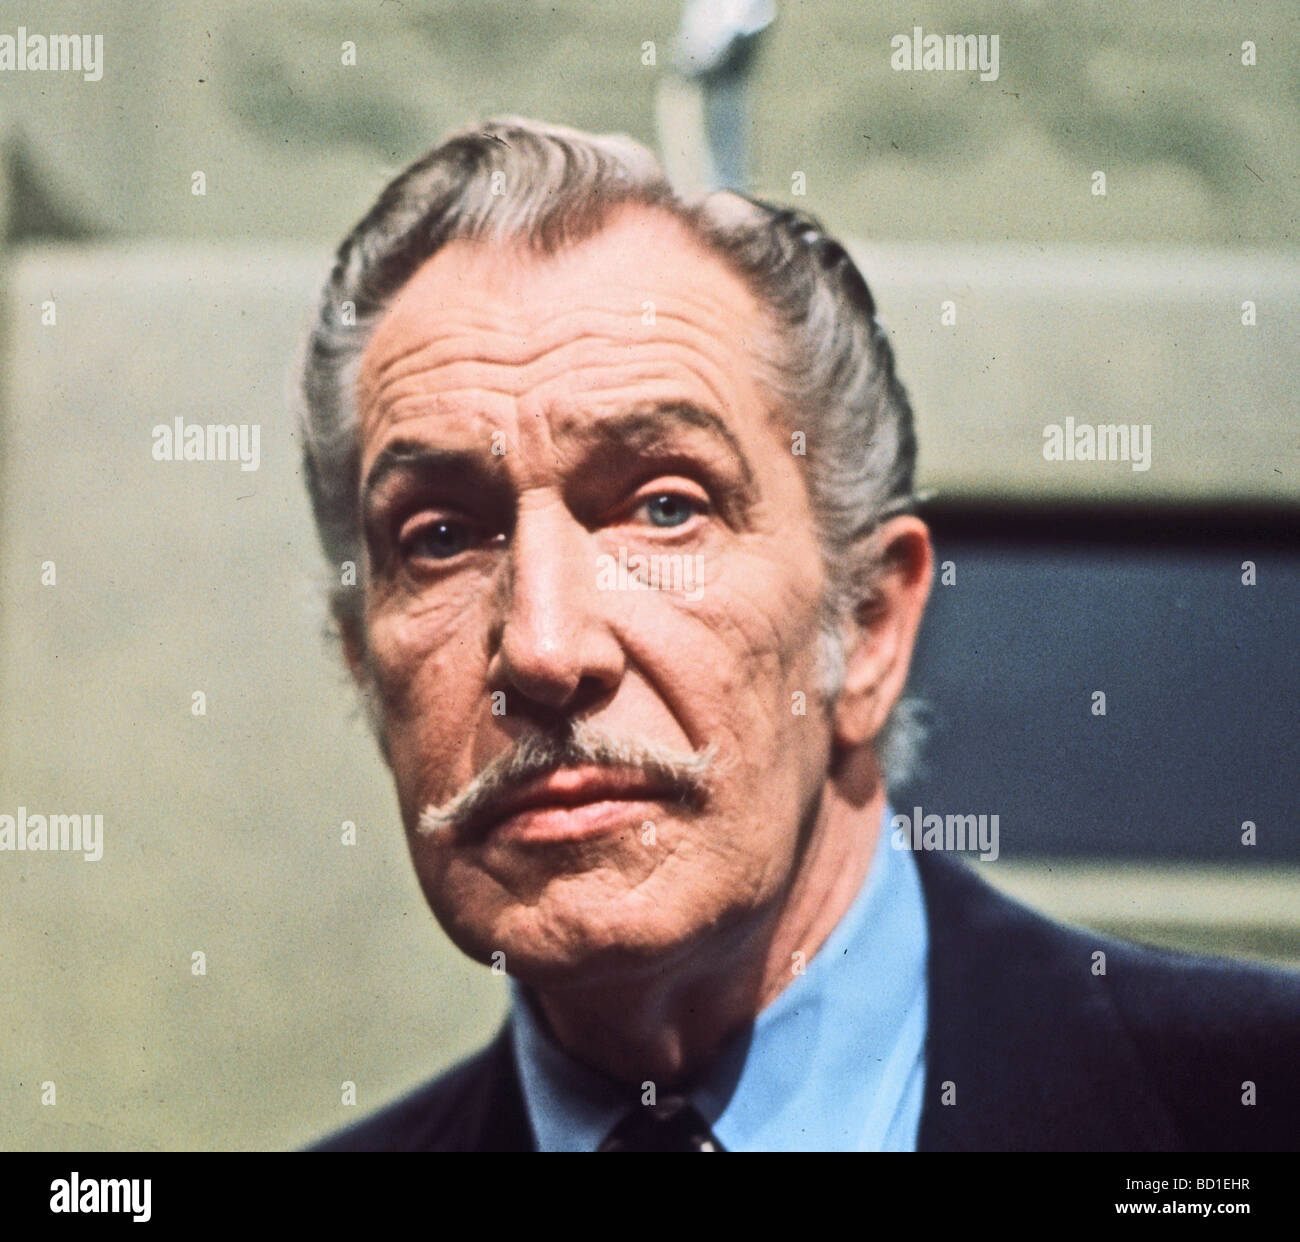 Vincent Price Uk Actor Who Specialised In Horror Roles Stock Photo Alamy